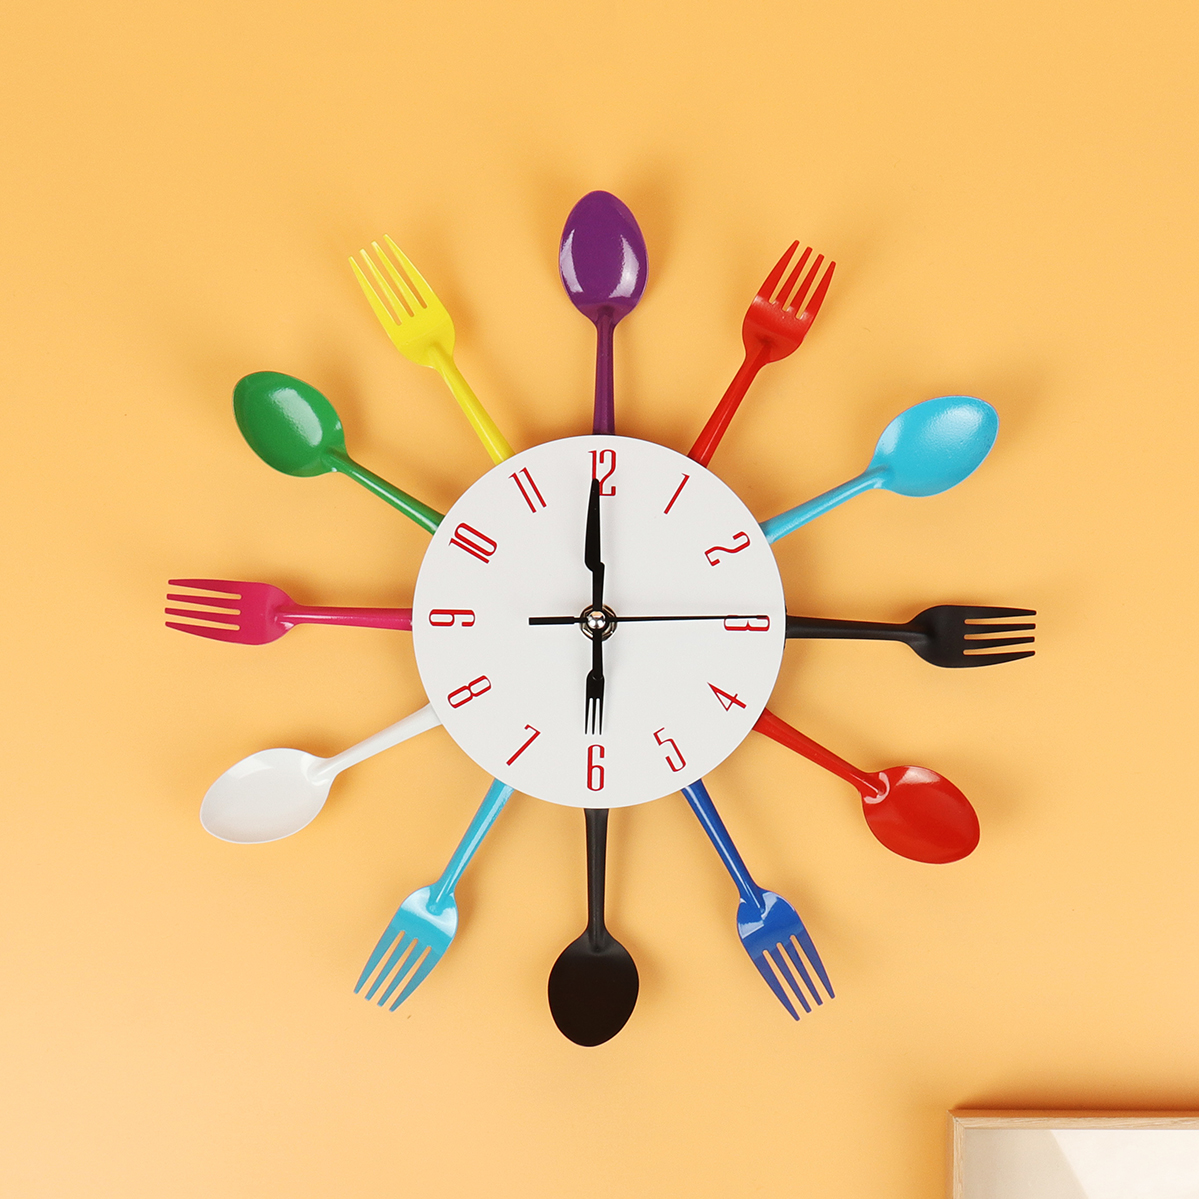 Wall Clock Digital Home Decoration Living Room Colorful Fork Spoon Quartz